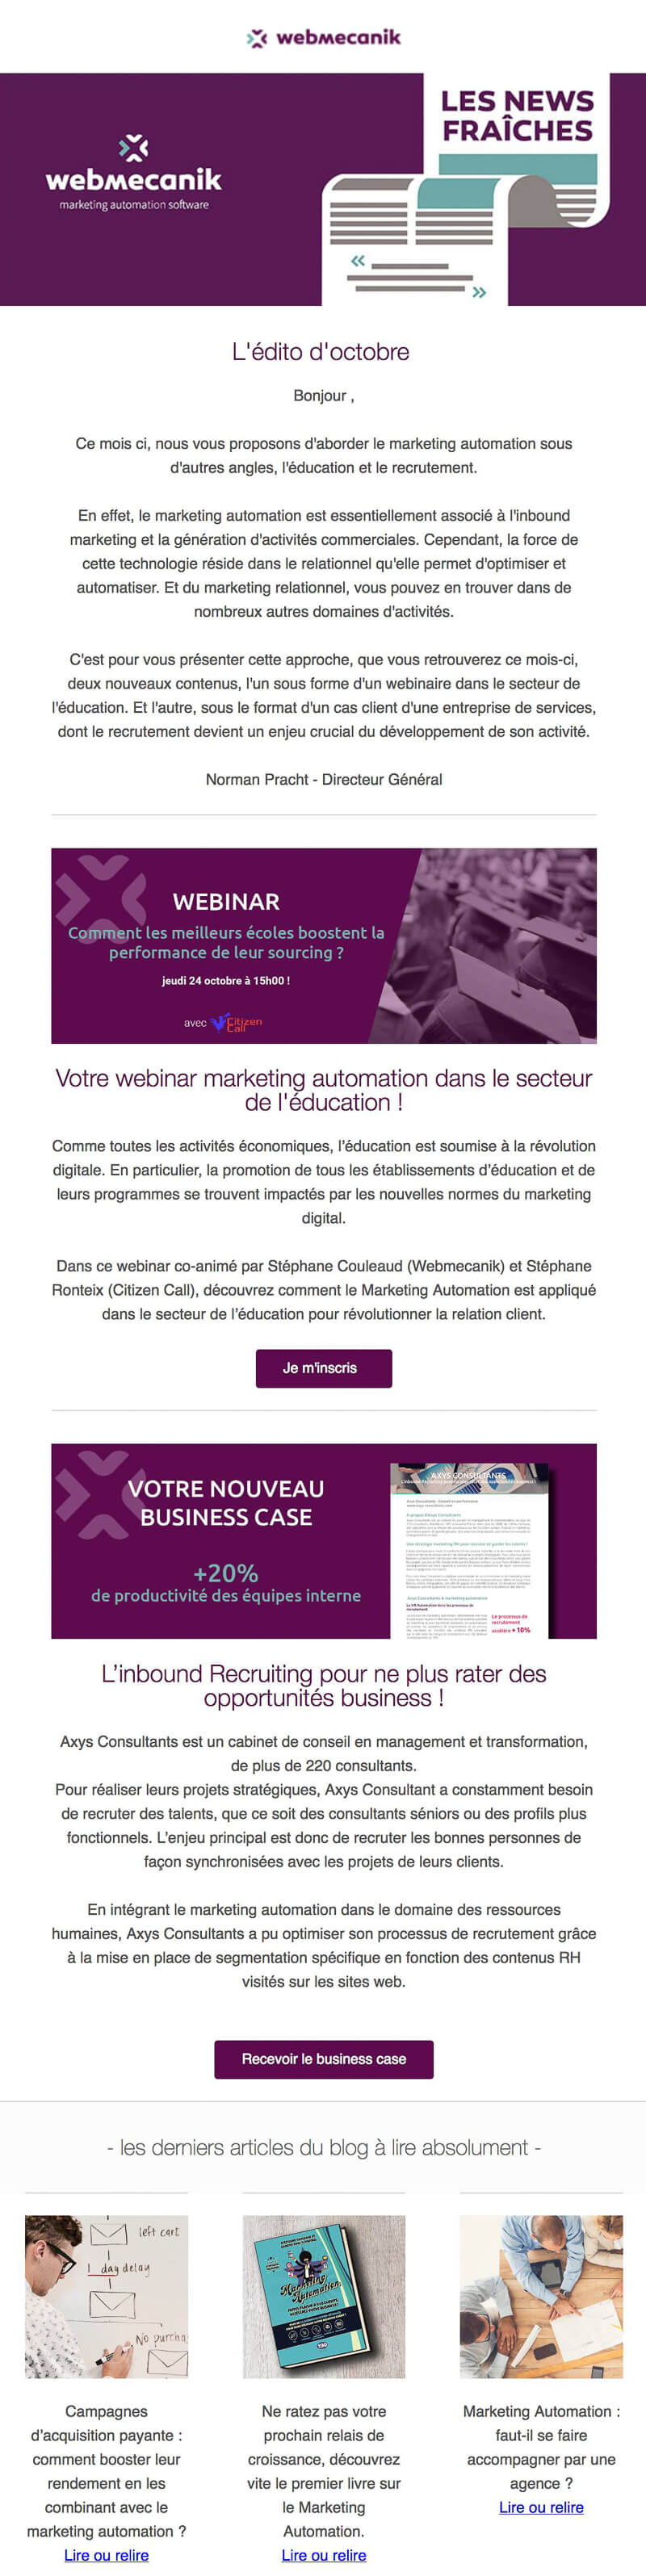 Newsletter Webmecanik